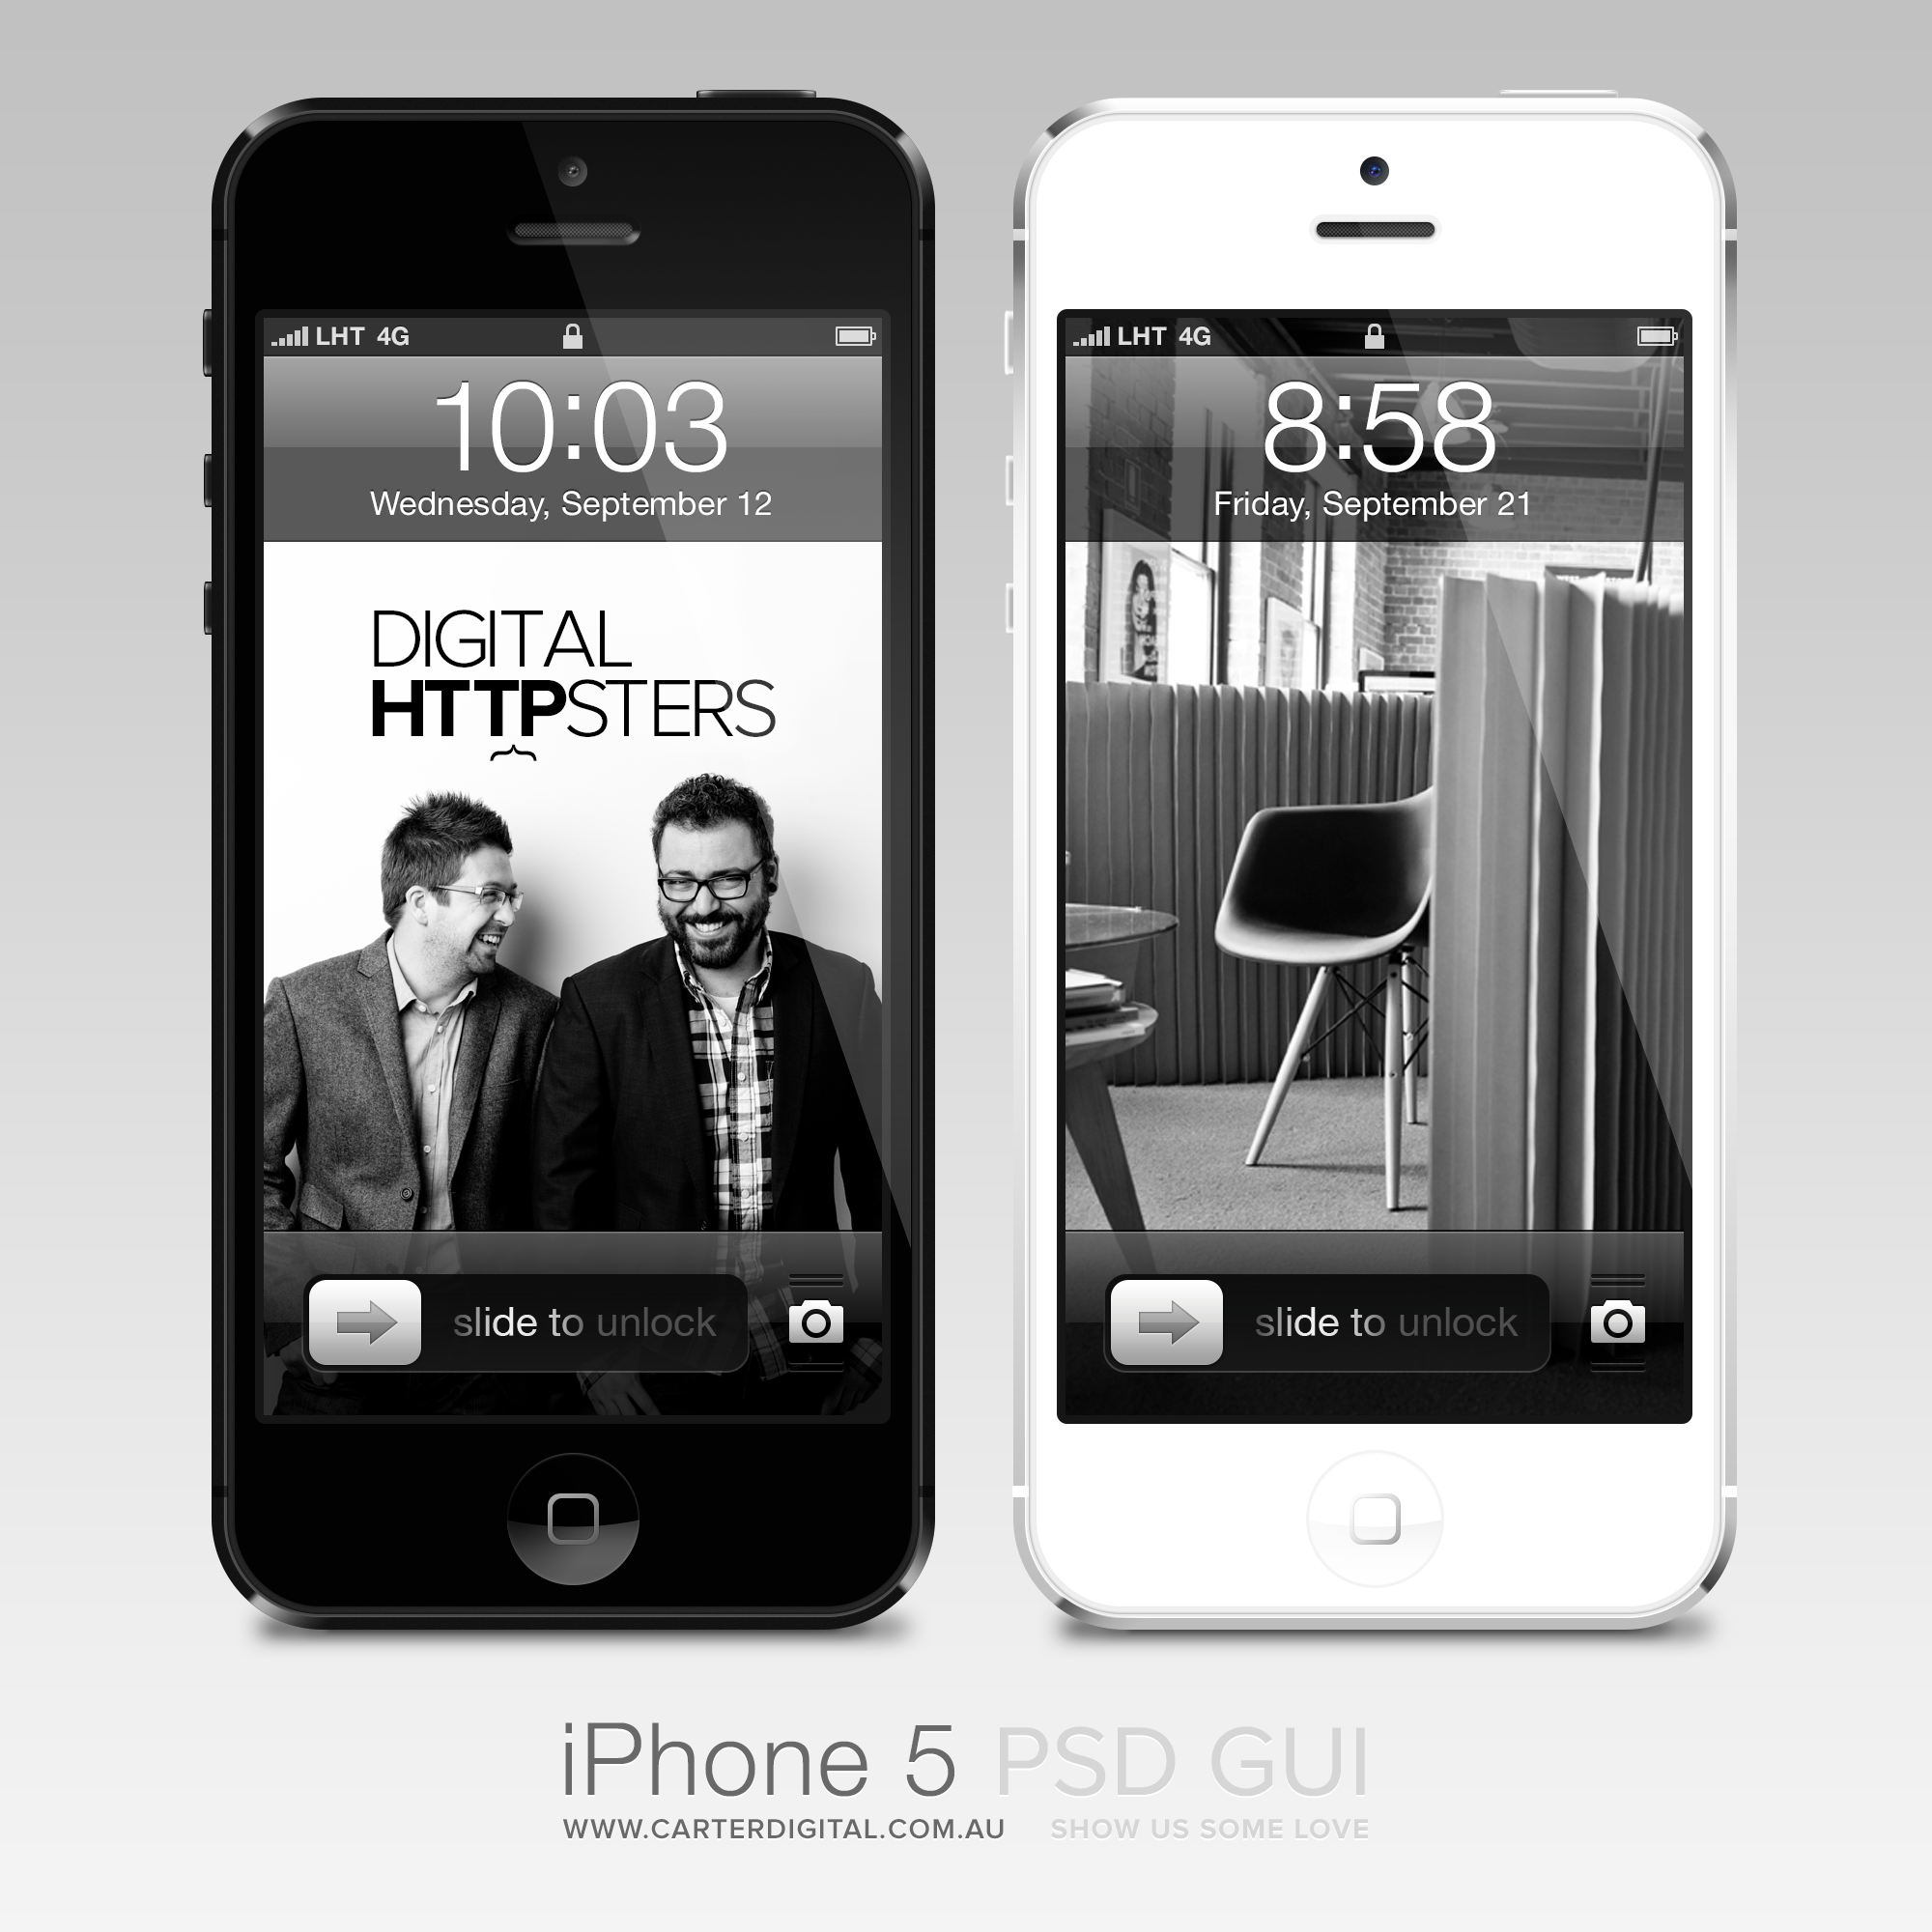 Free_iphone_5_gui_psd